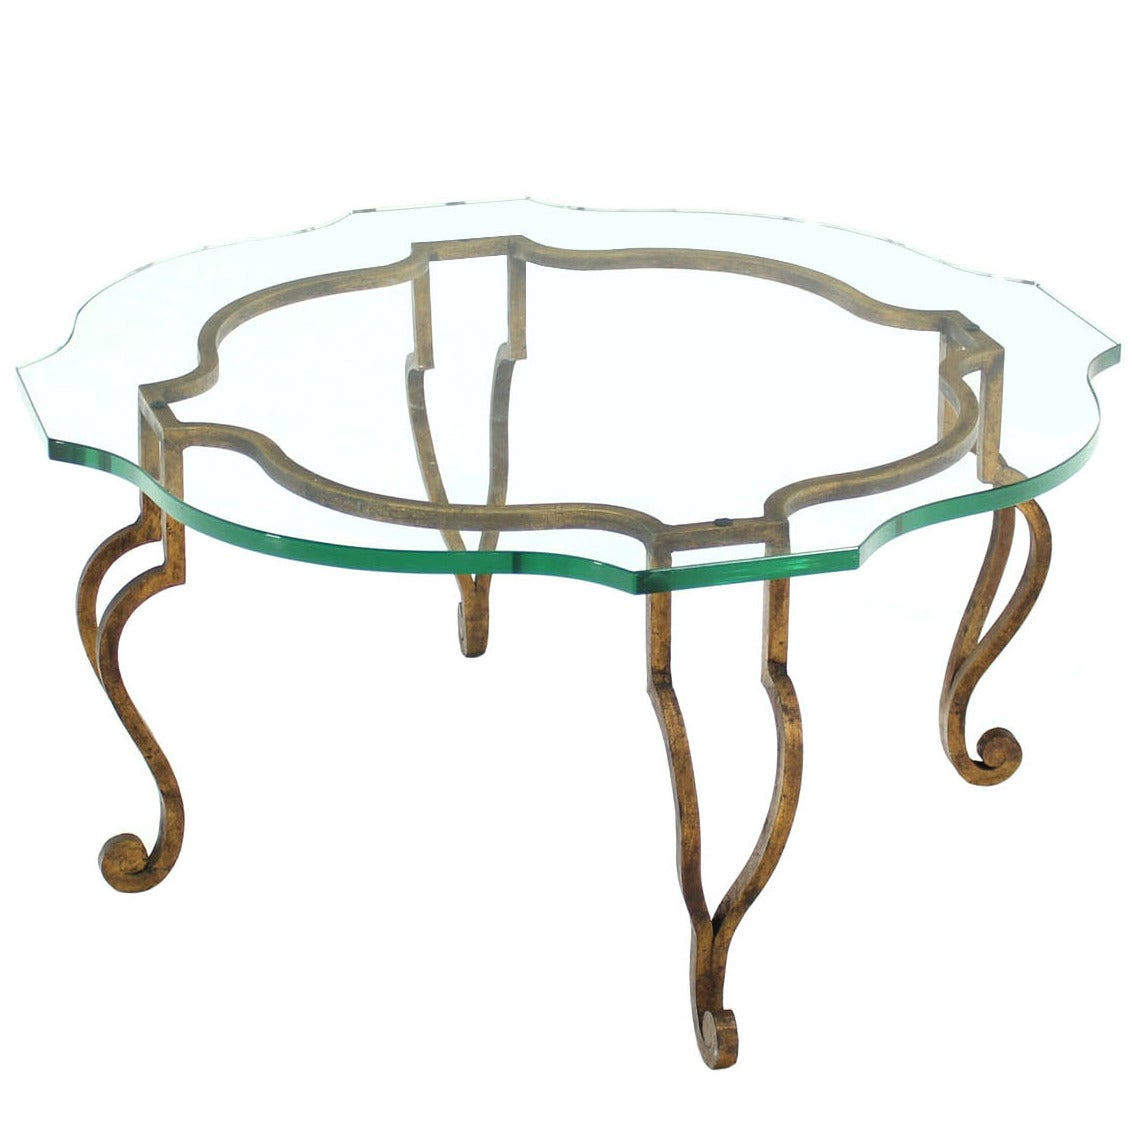 Round figural wrought iron base coffee table with thick glass top round figural wrought iron base coffee table with thick glass top 1 geotapseo Images